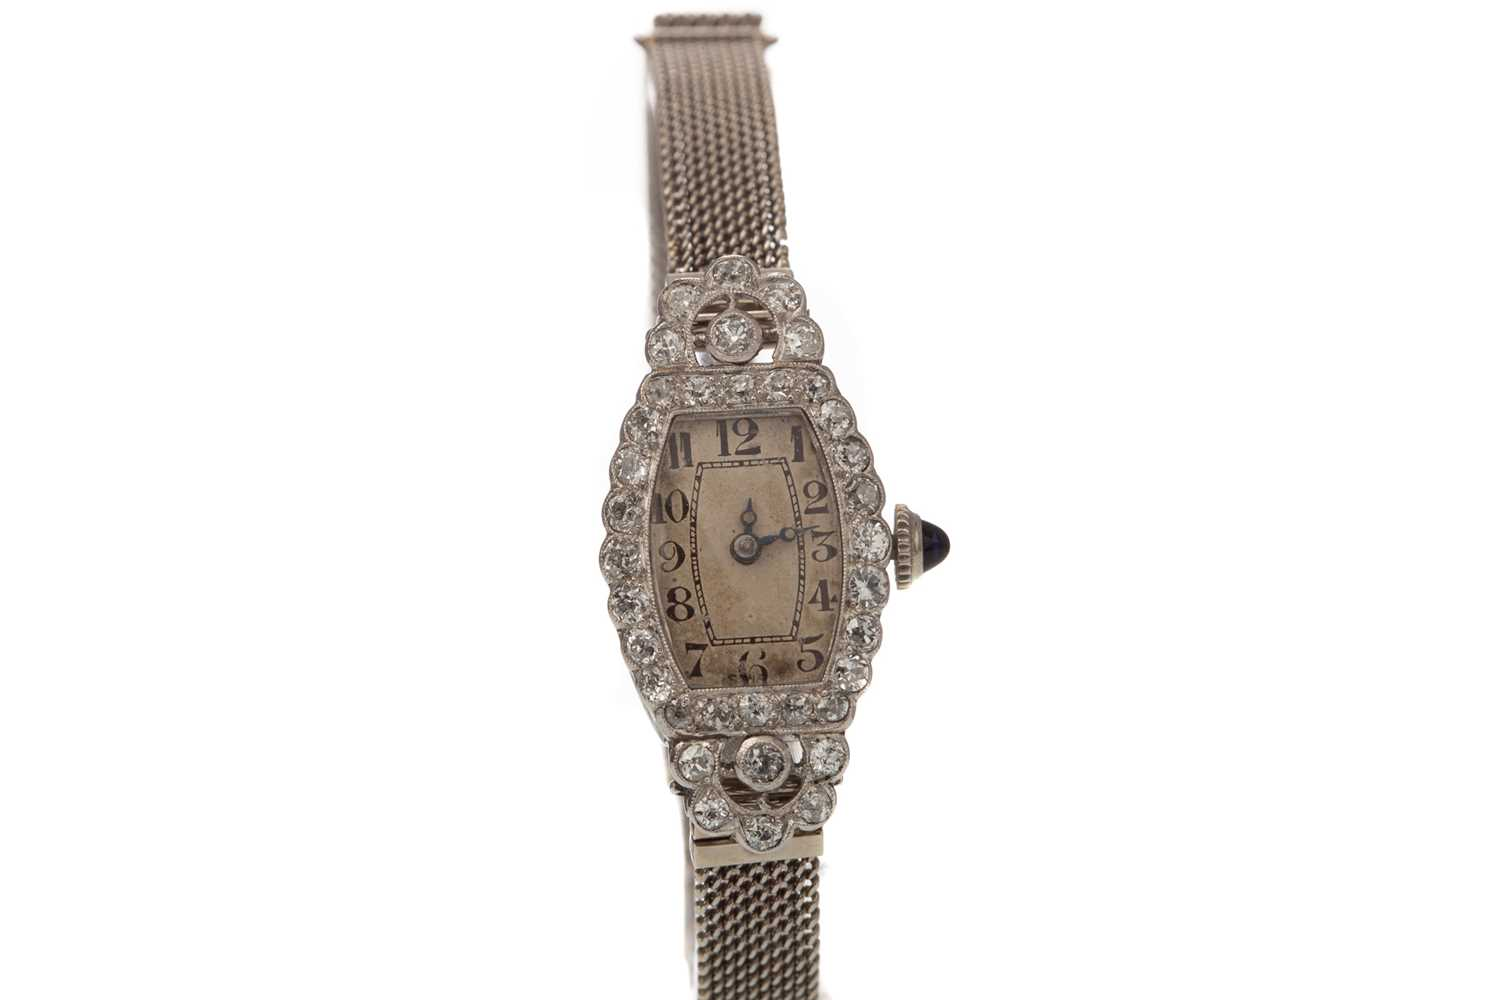 A LADY'S ART DECO DIAMOND COCKTAIL WATCH - Image 2 of 4